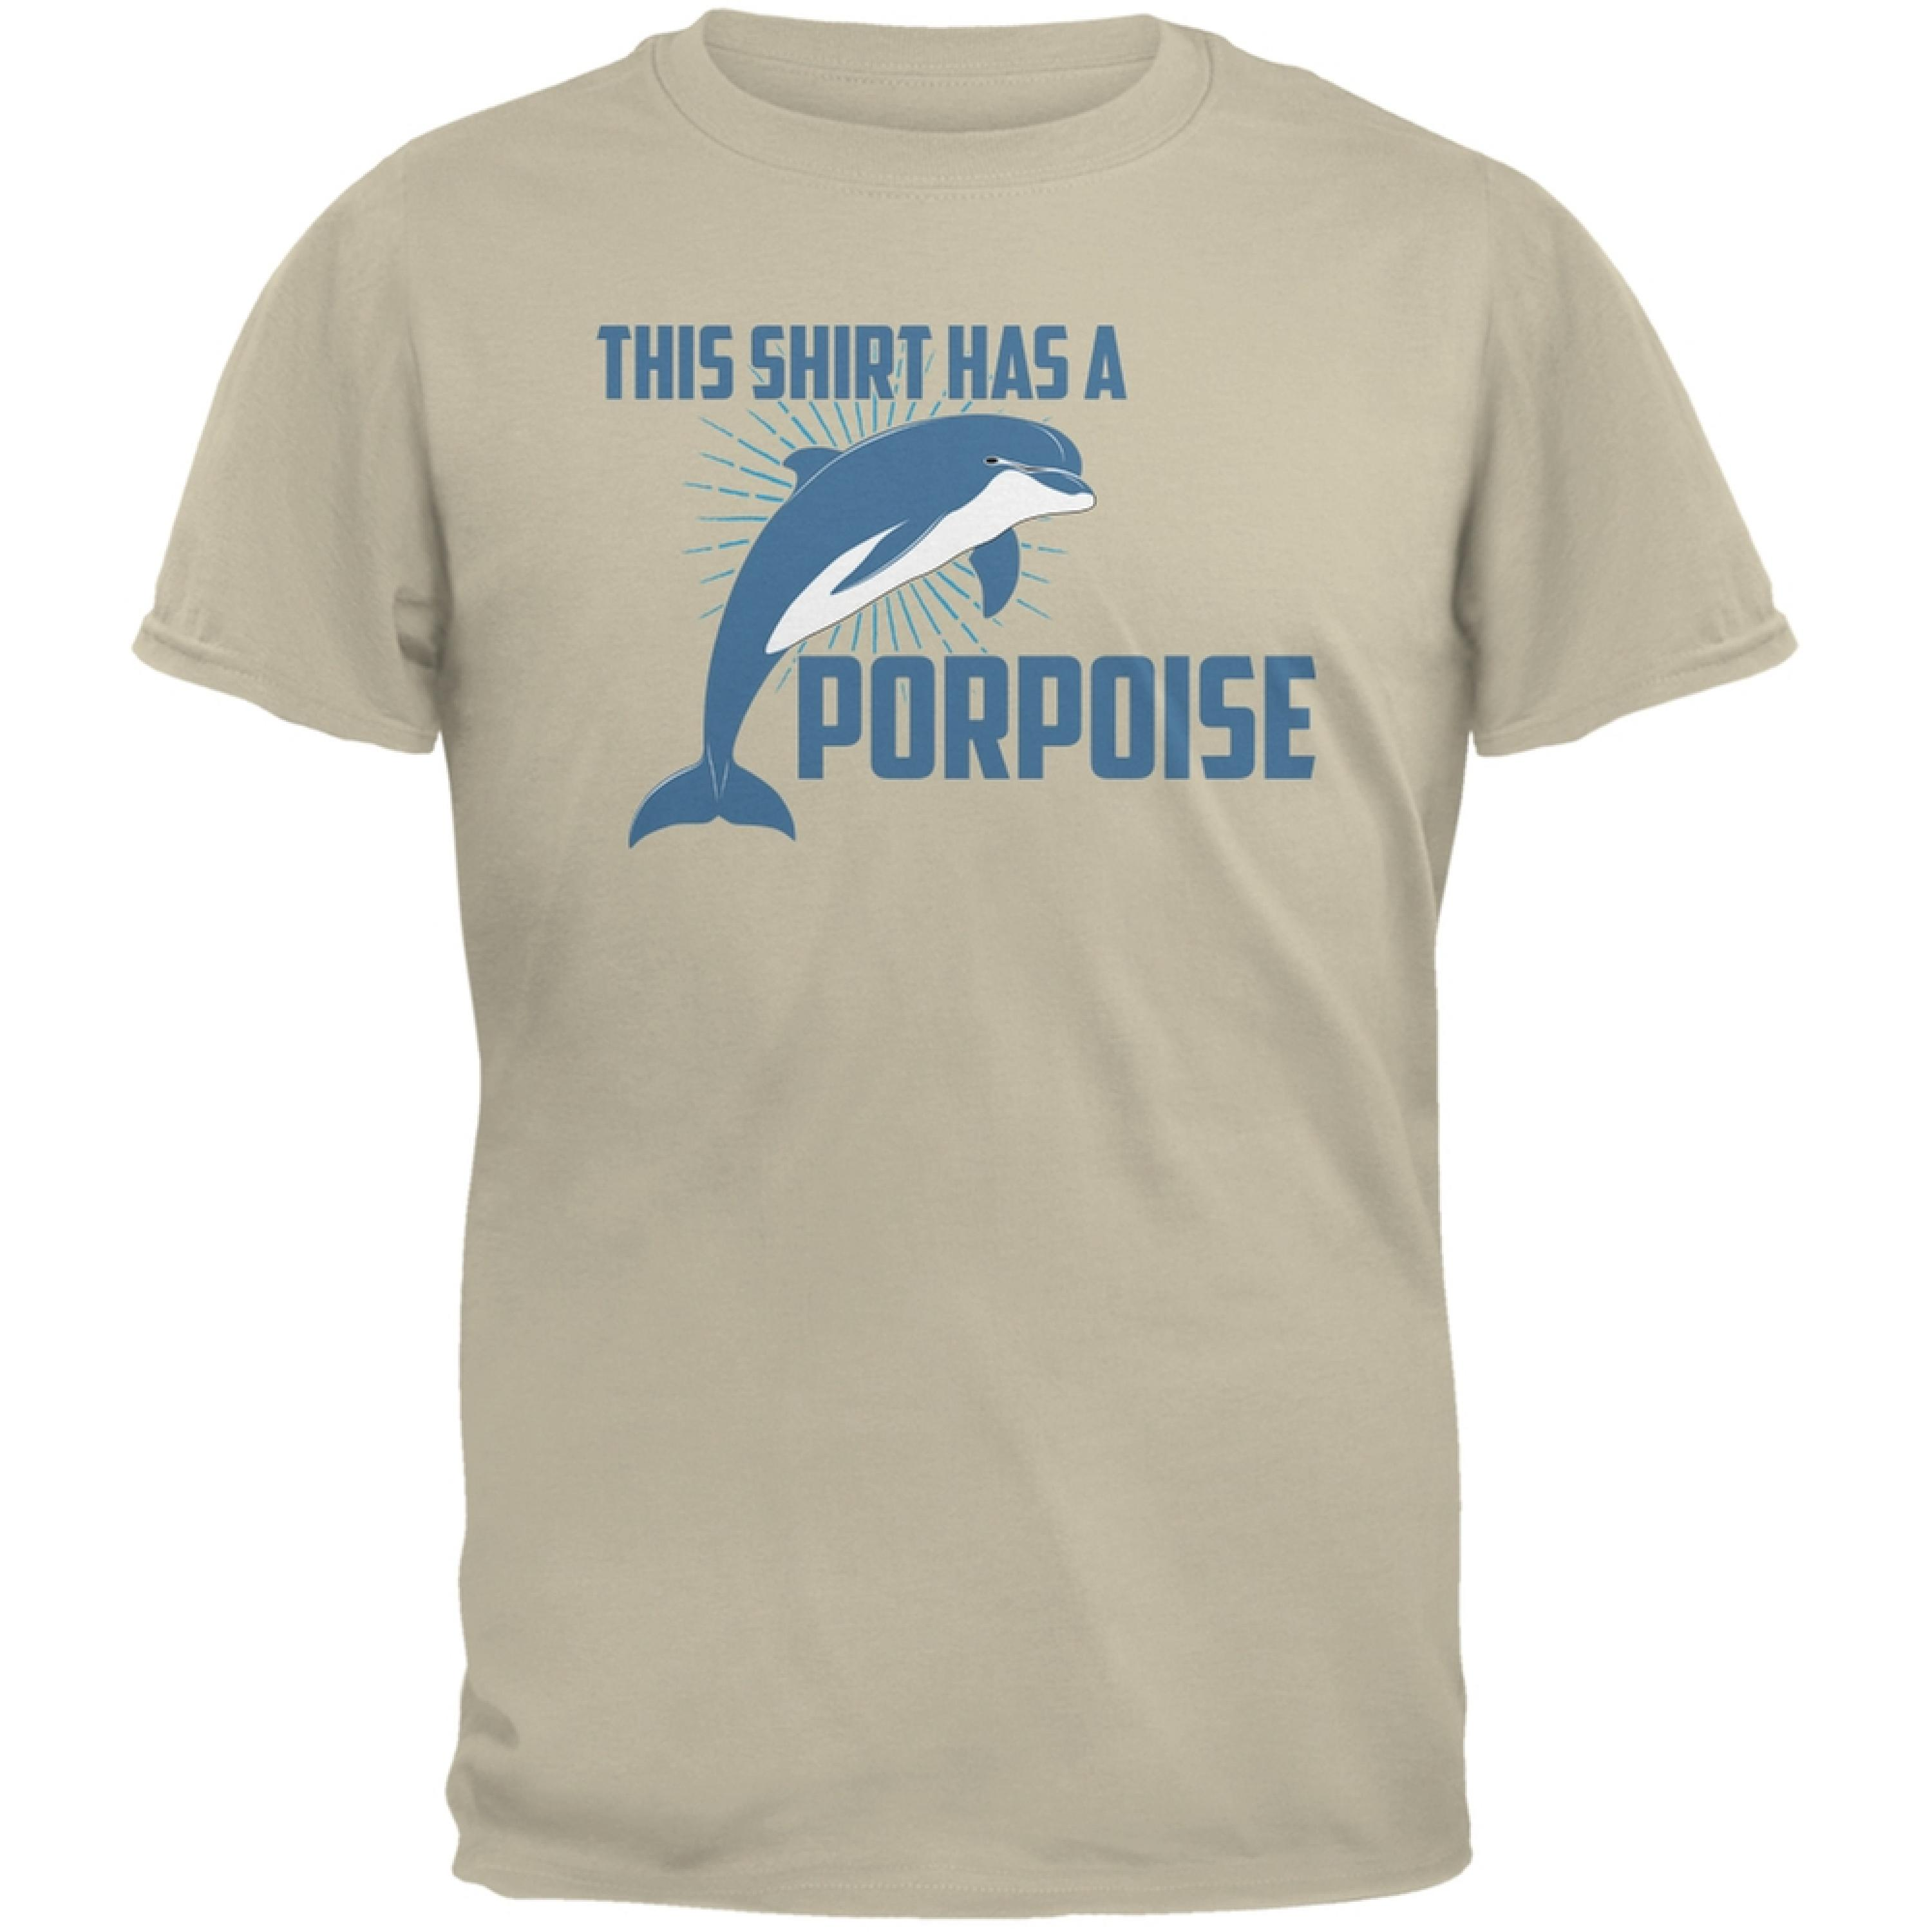 This Shirt Has A Porpoise Sand Adult T-Shirt